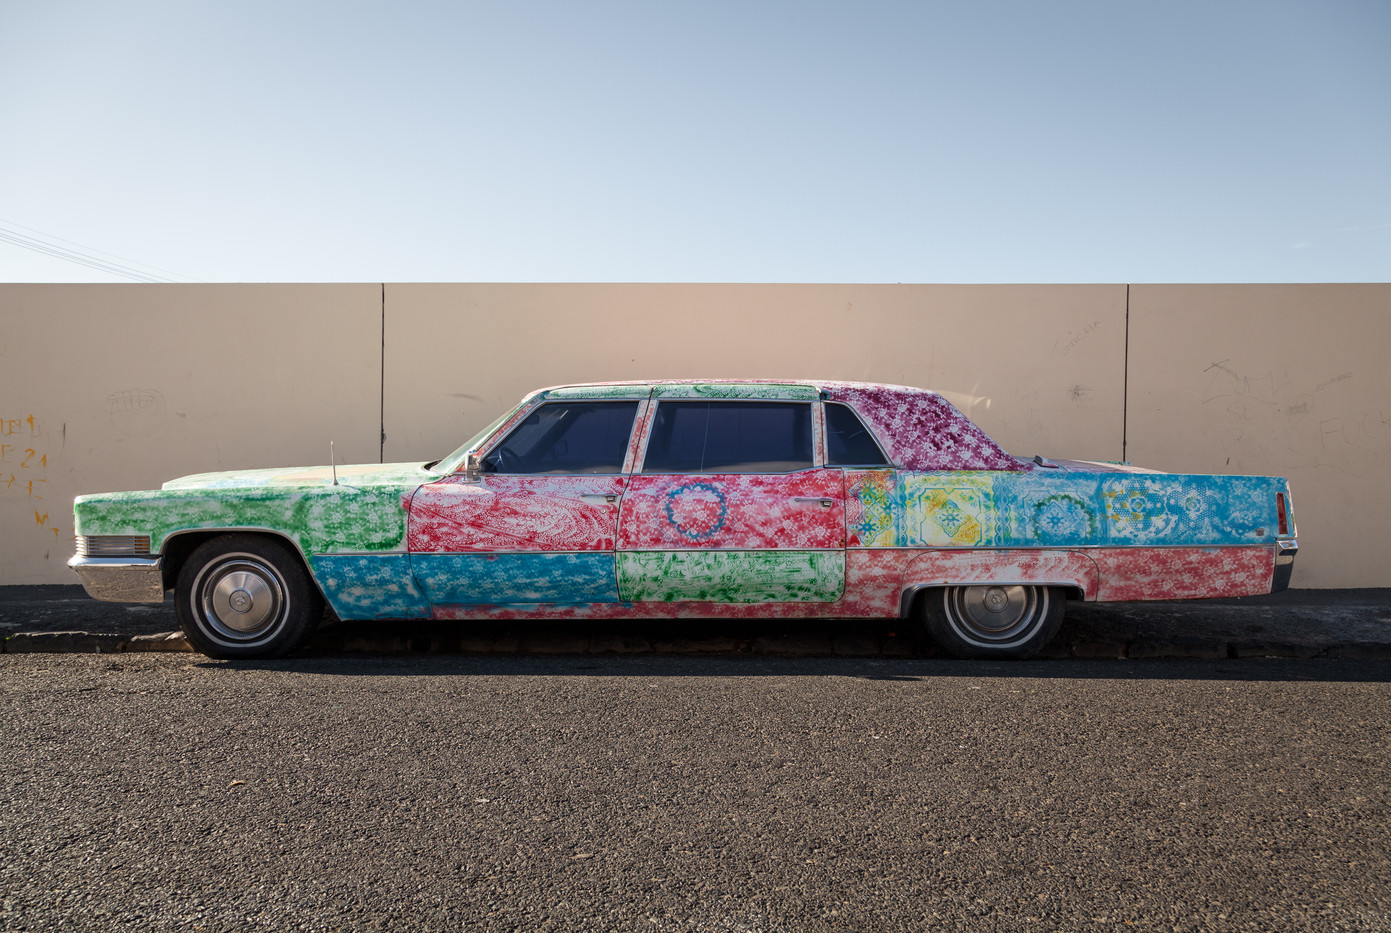 Ashley Walters | Cadillac | 2017 /19 | Giclée Archival Pigment Ink on Cotton Paper | 110 x 73 cm | Edition 1 of 5 + 2AP